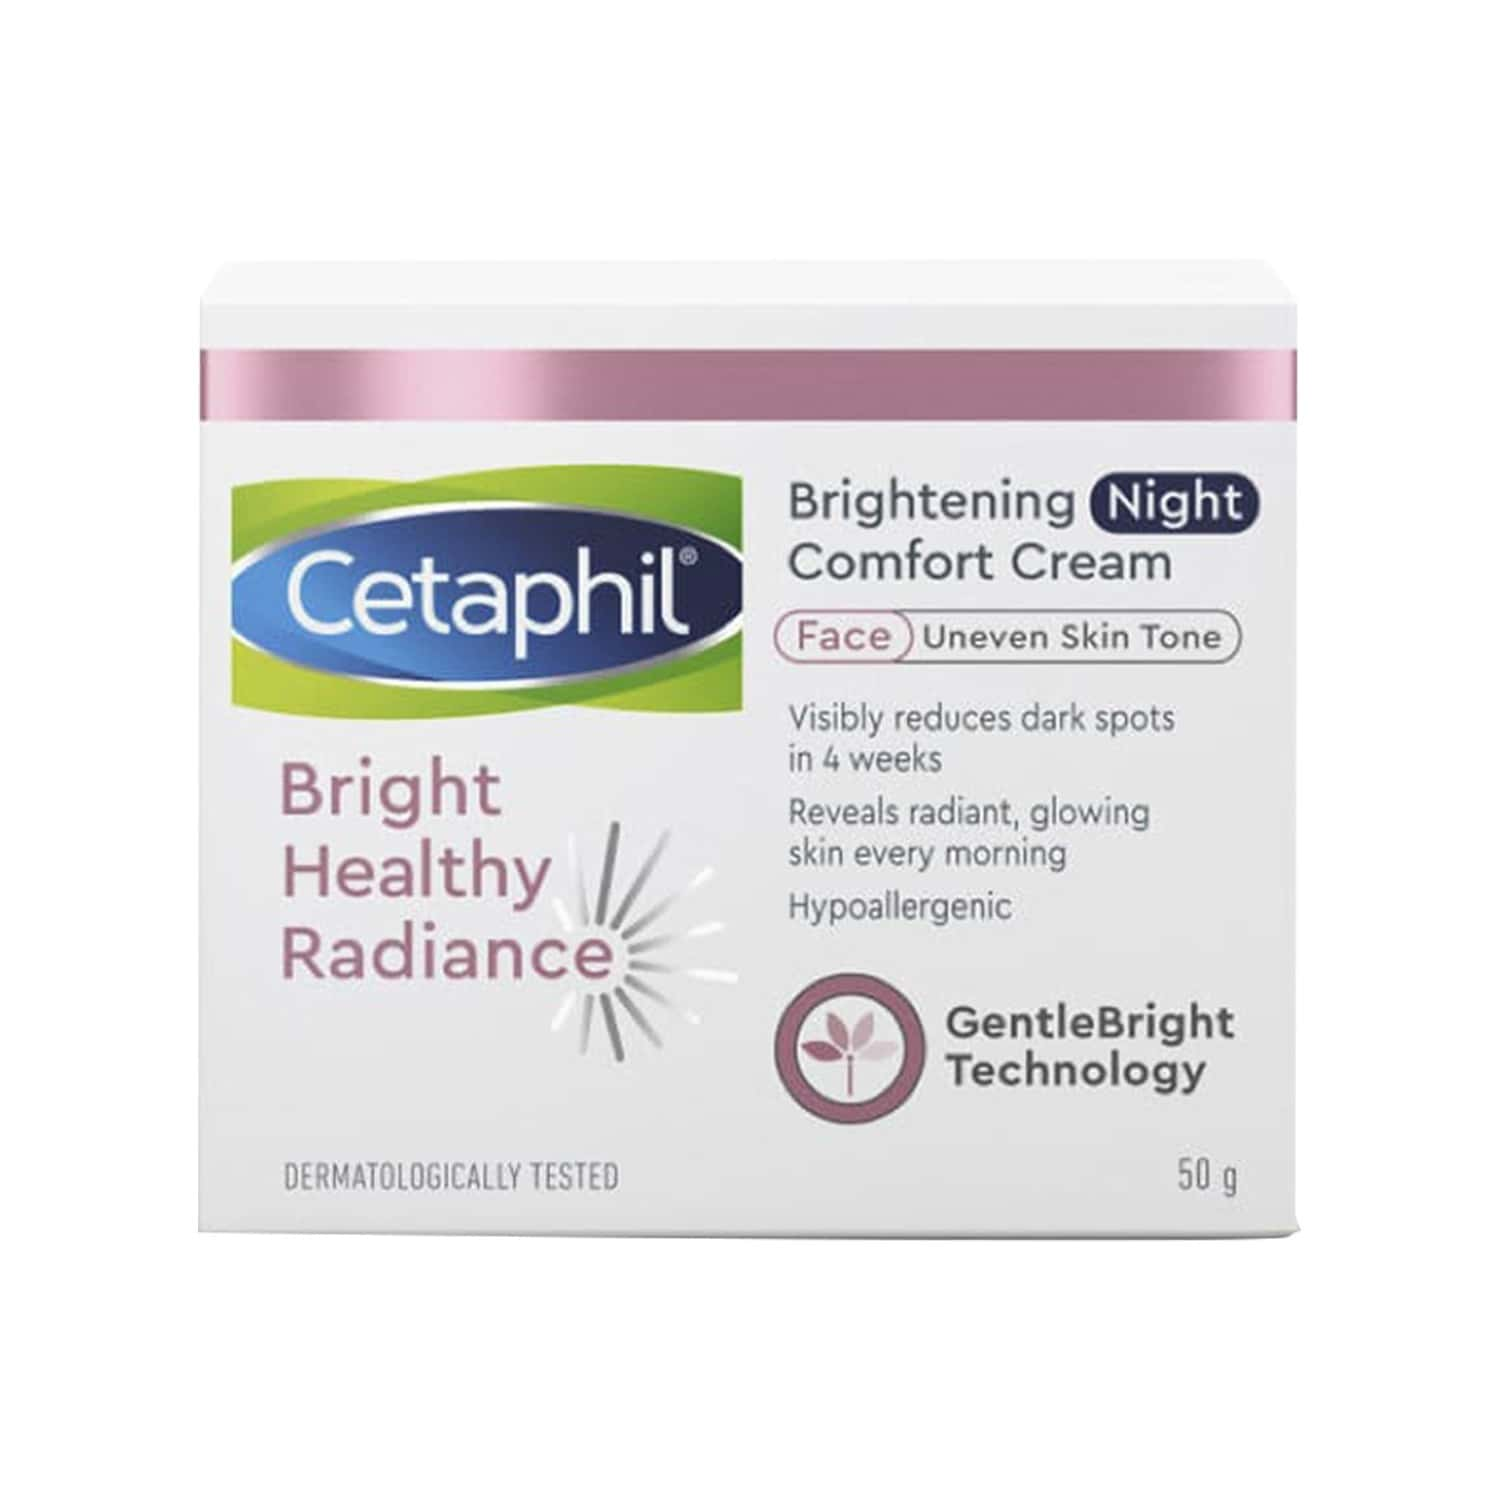 Cetaphil Bhr Brightening Night Comfort Cream - 50ml